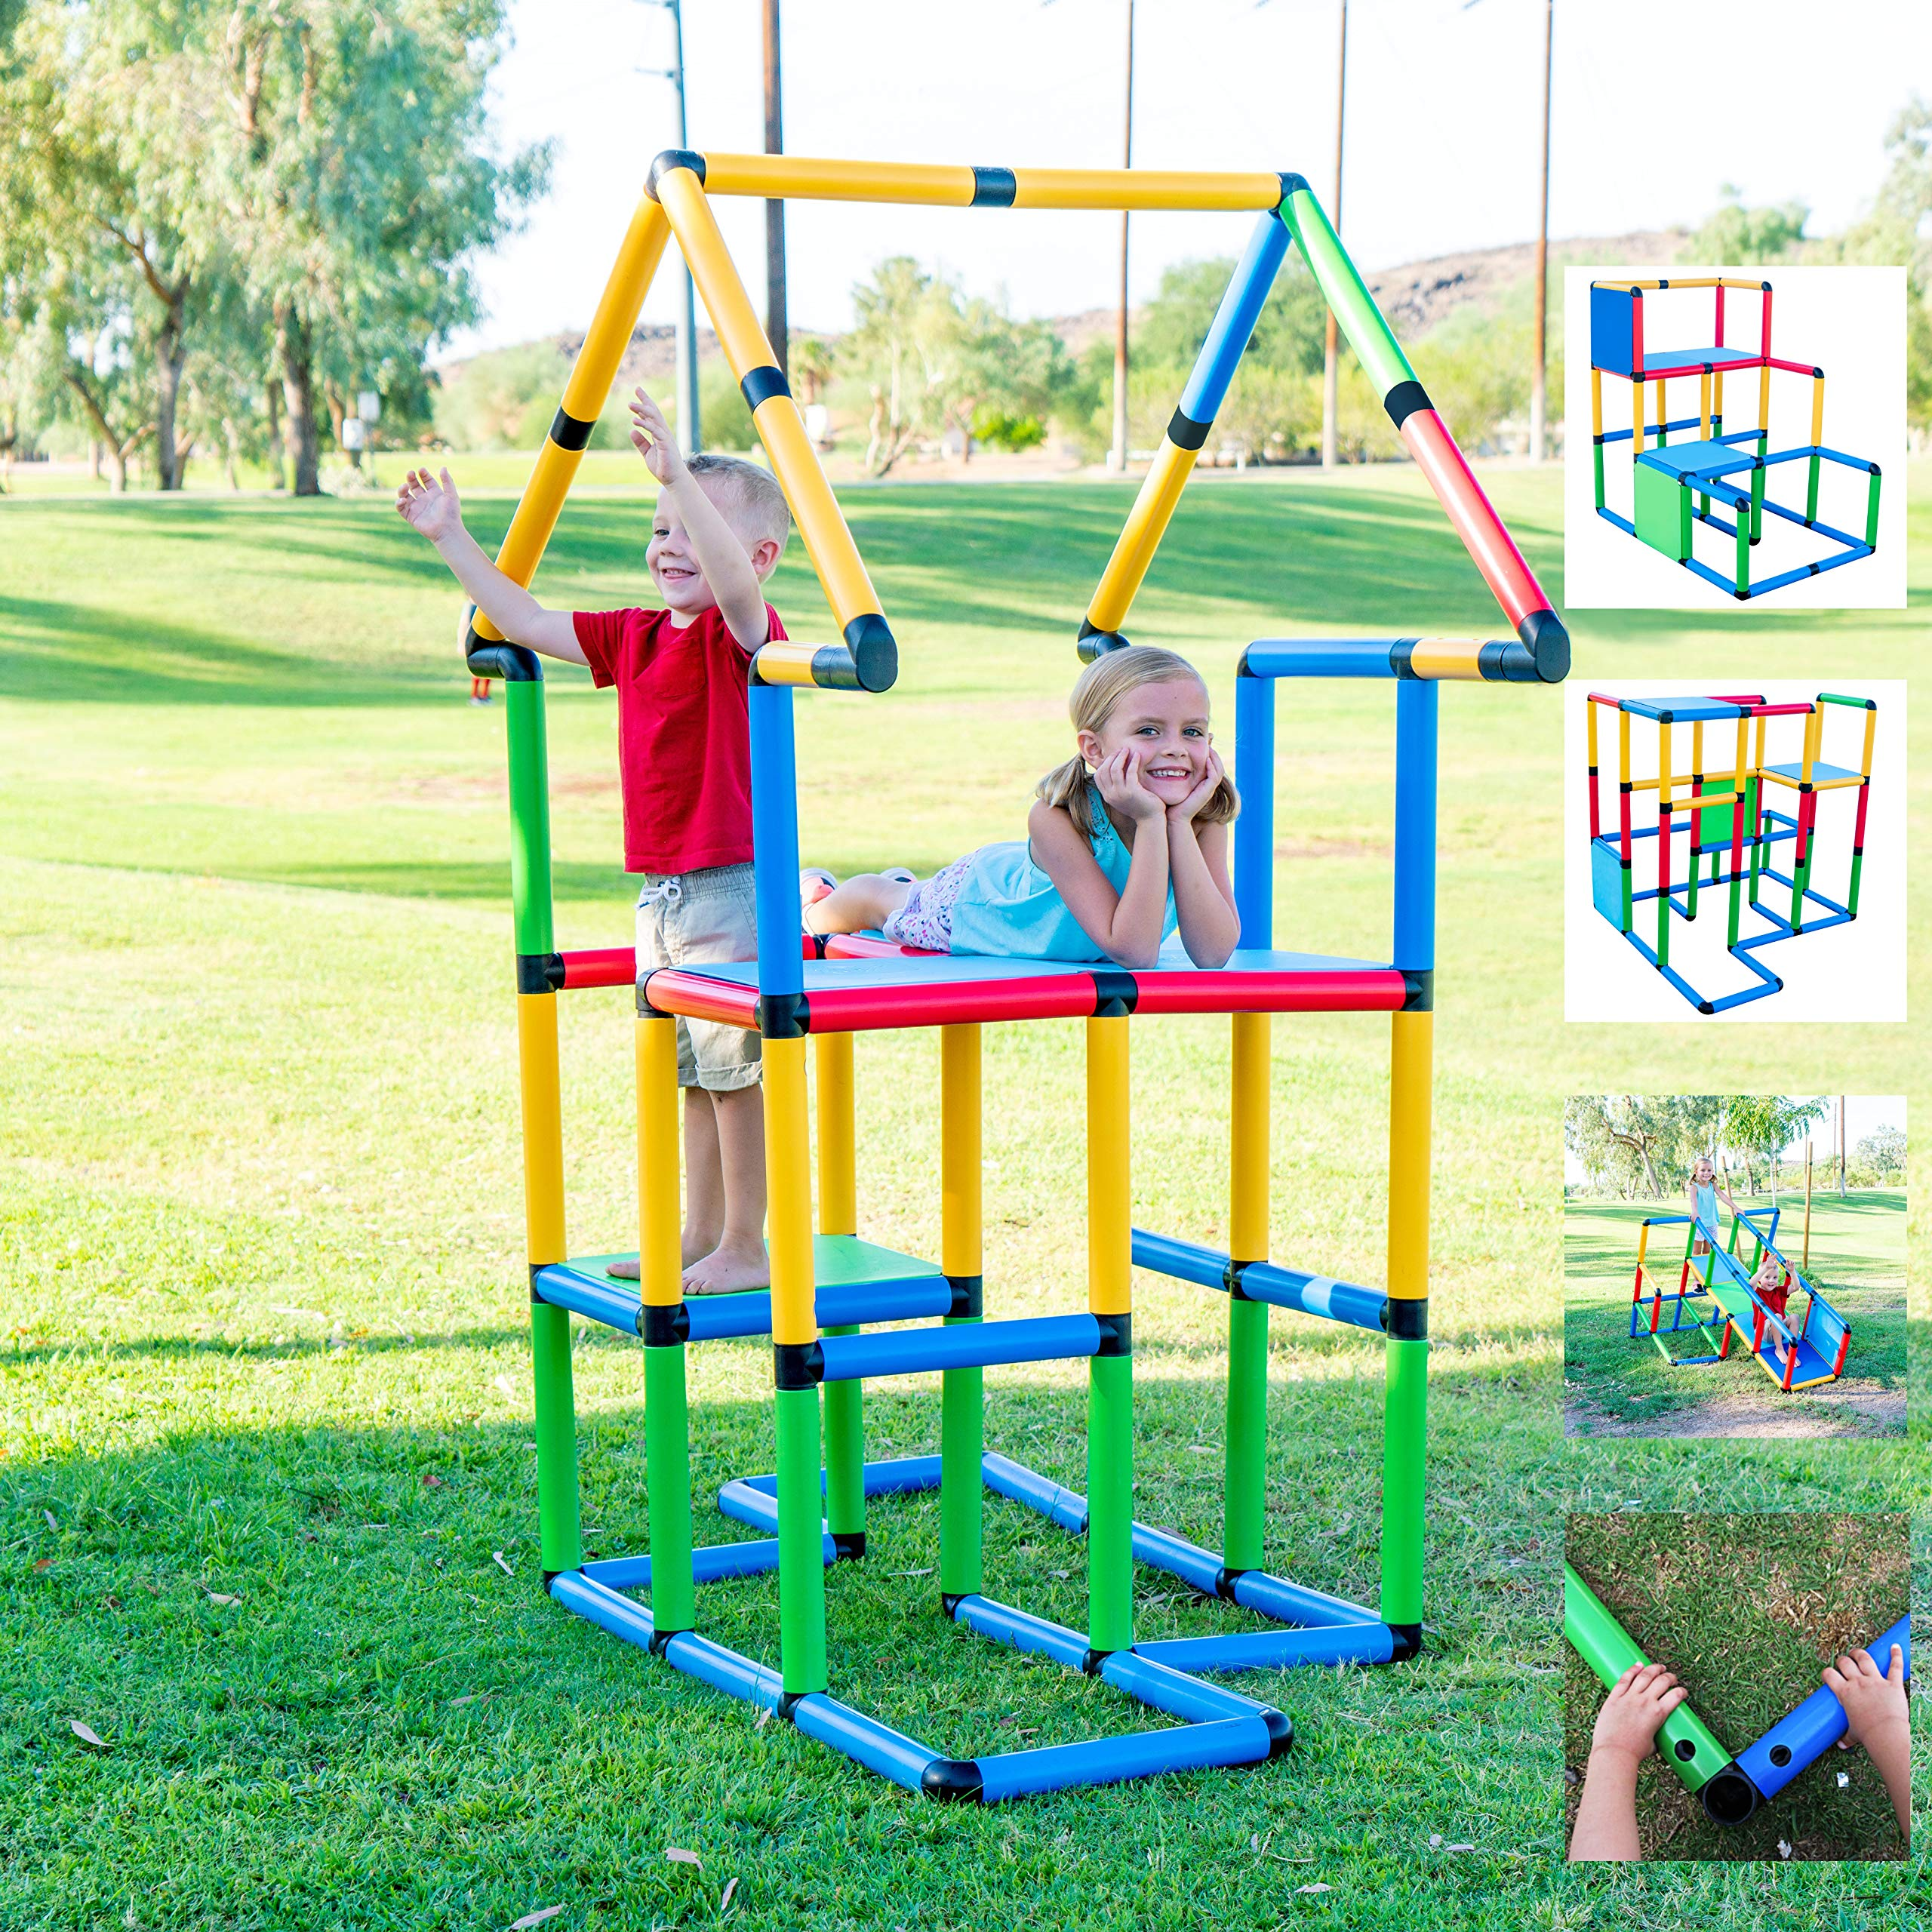 Funphix Deluxe 296 Piece Construction Toy Set - Building Play-Structures for Indoors & Outdoors - Fun & Educational Learning Toys for Ages 2 to 12 by Funphix (Image #1)